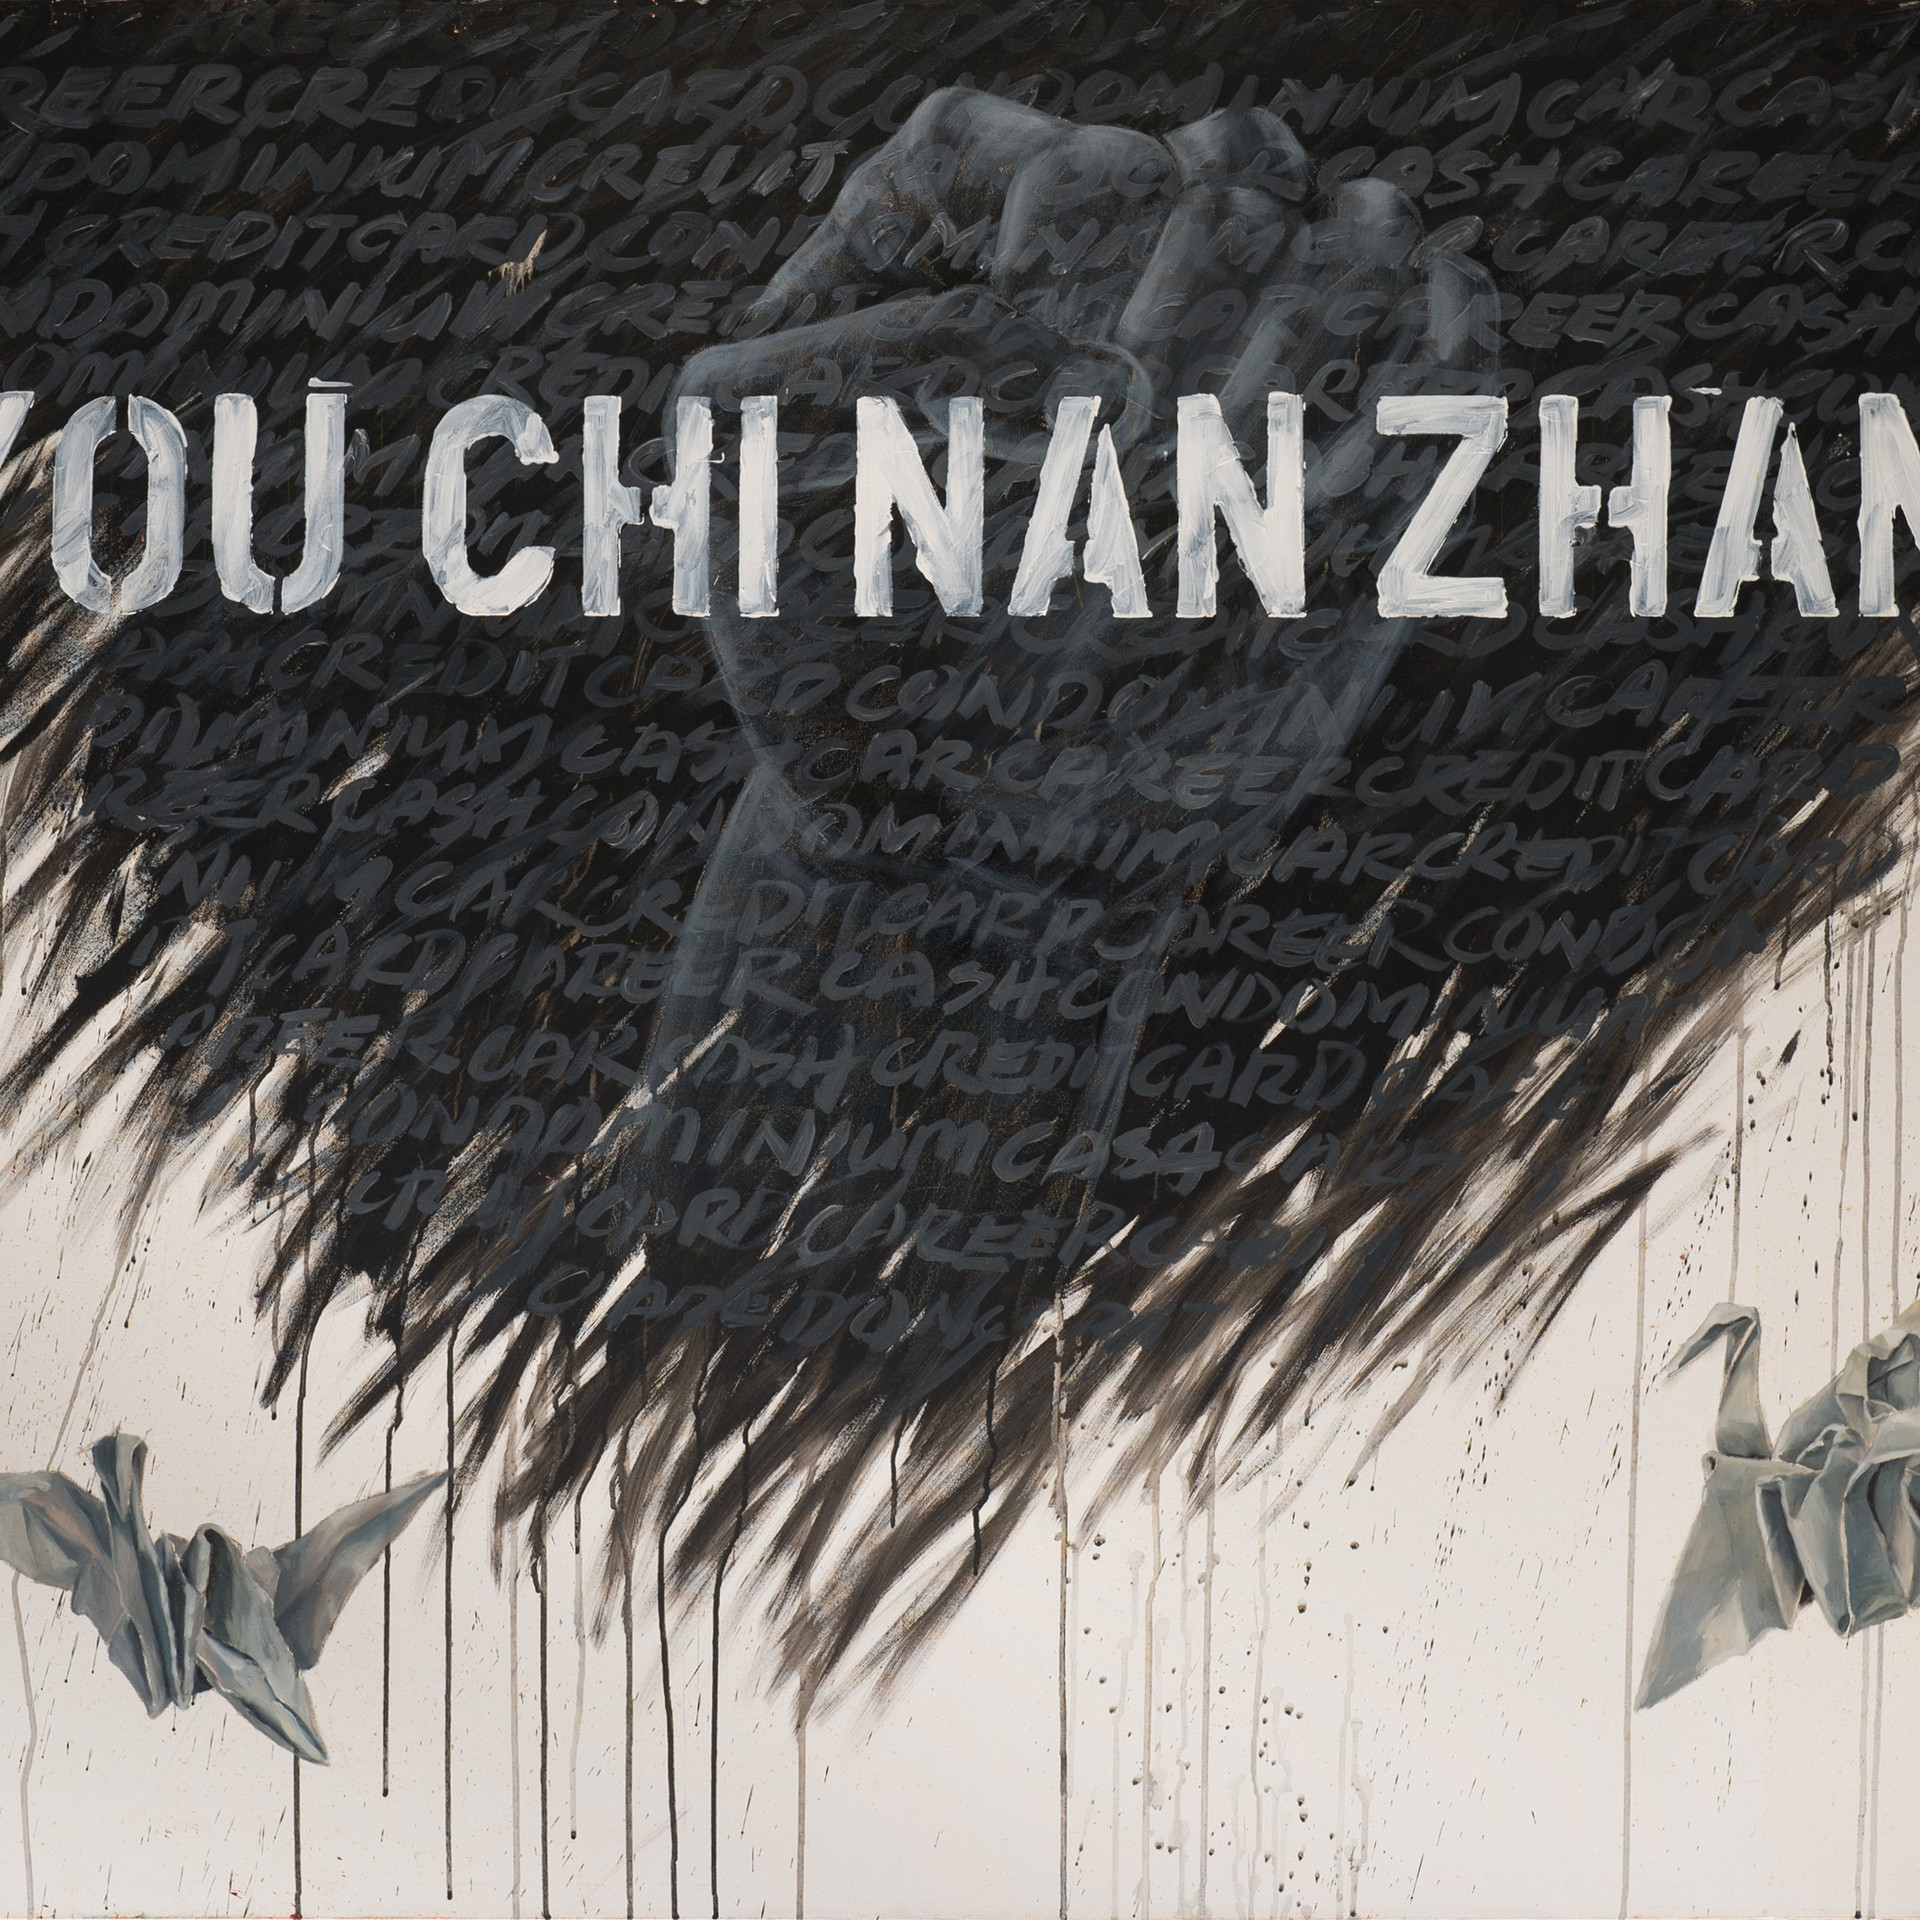 You Chi Nan Zhan, 2000, oil and acrylic on canvas, 130x150cm. Private collection